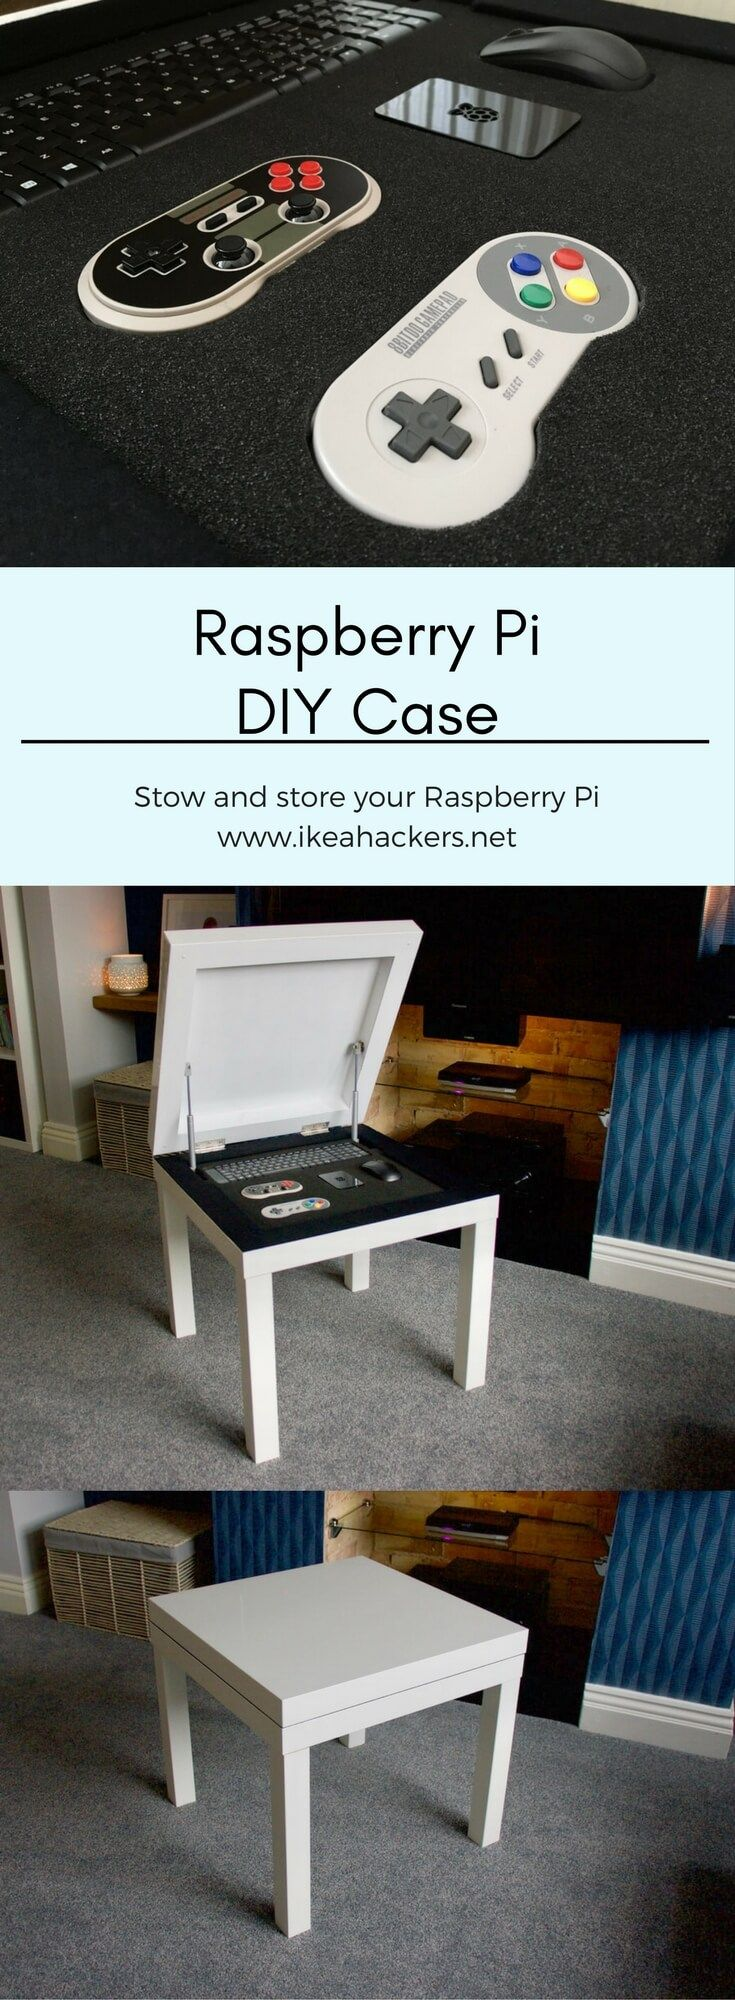 IKEA LACK Raspberry Pi Case / Storage Table http://www.ikeahackers.net/2017/09/lack-raspberry-pi-case-storage.html